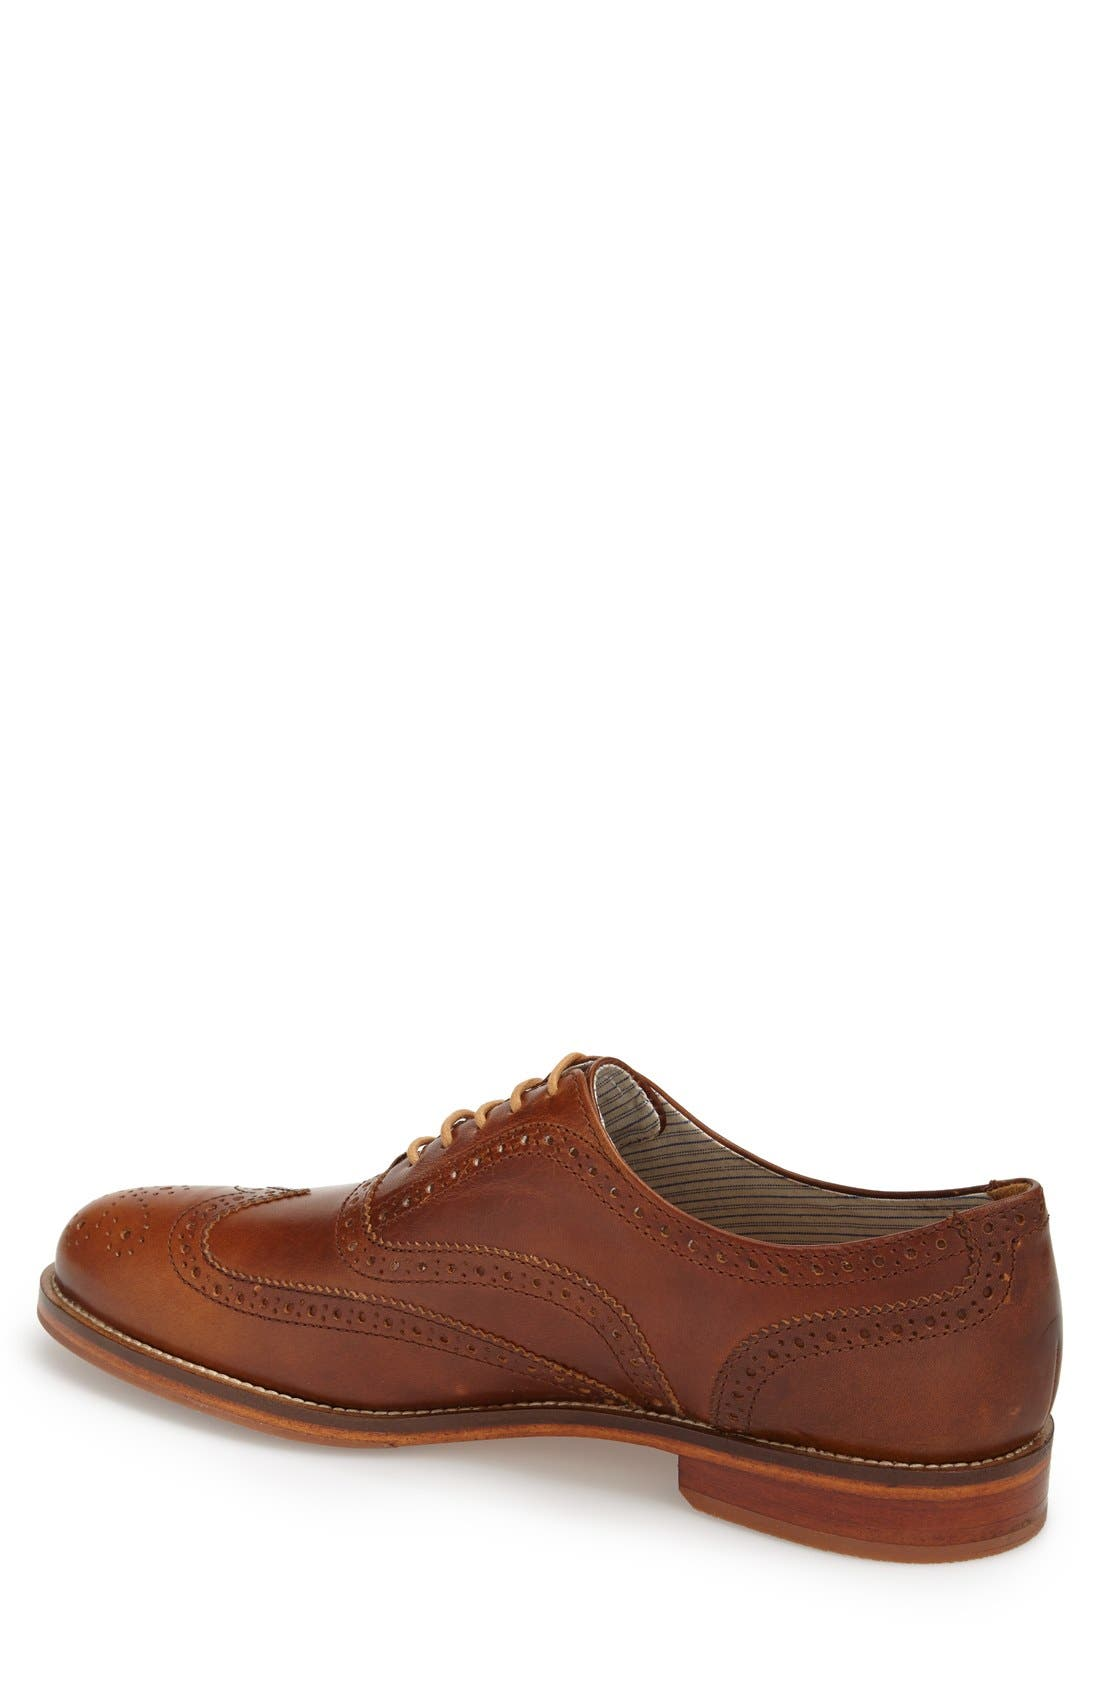 Charlie Plus Wingtip Oxford,                             Alternate thumbnail 2, color,                             BRASS LEATHER